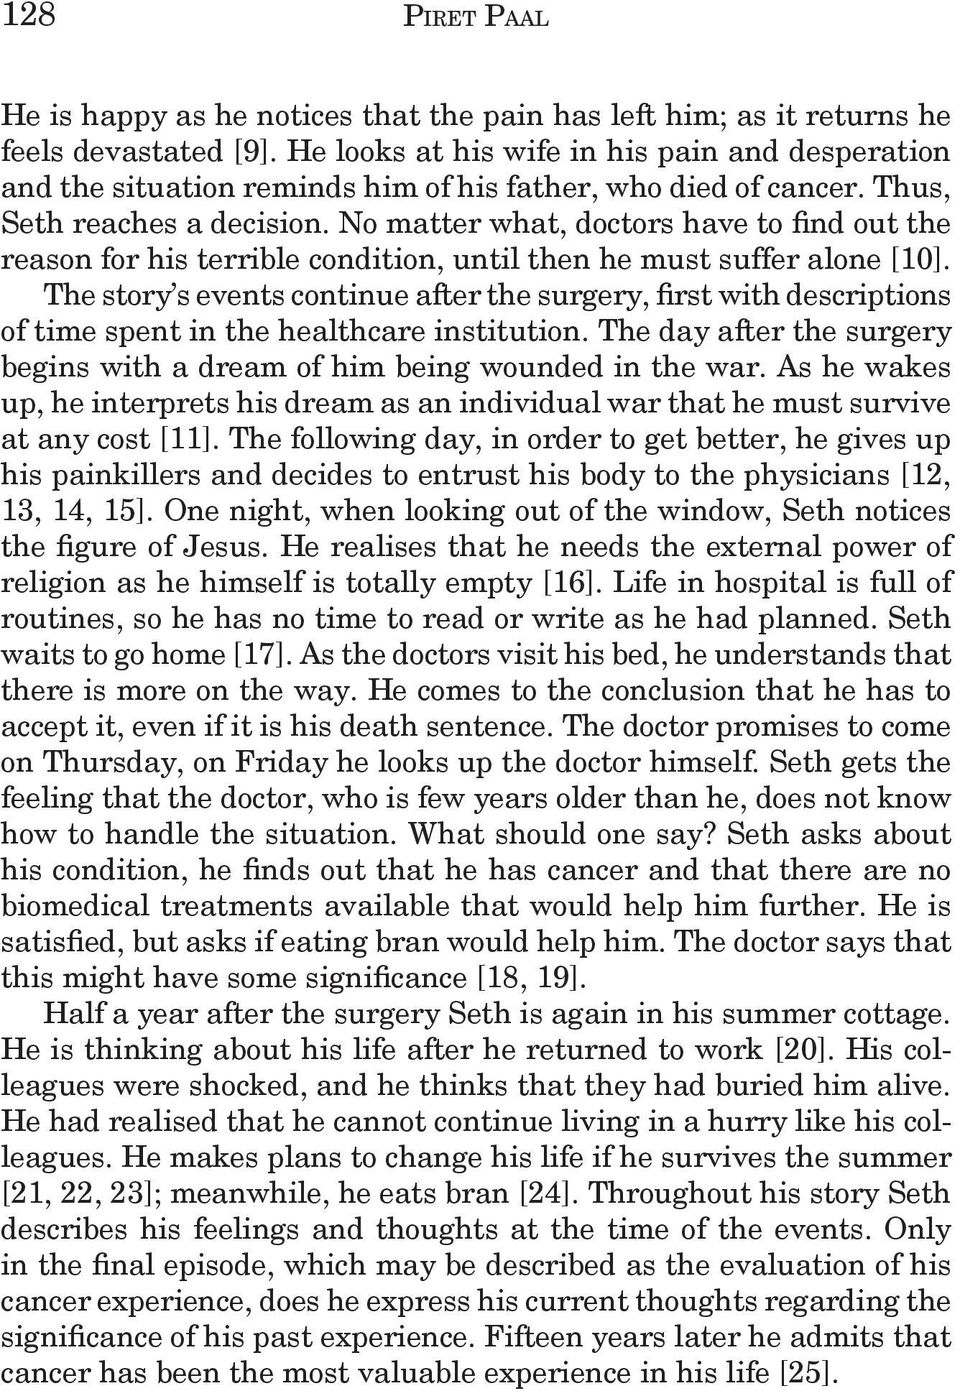 No matter what, doctors have to find out the reason for his terrible condition, until then he must suffer alone [10].